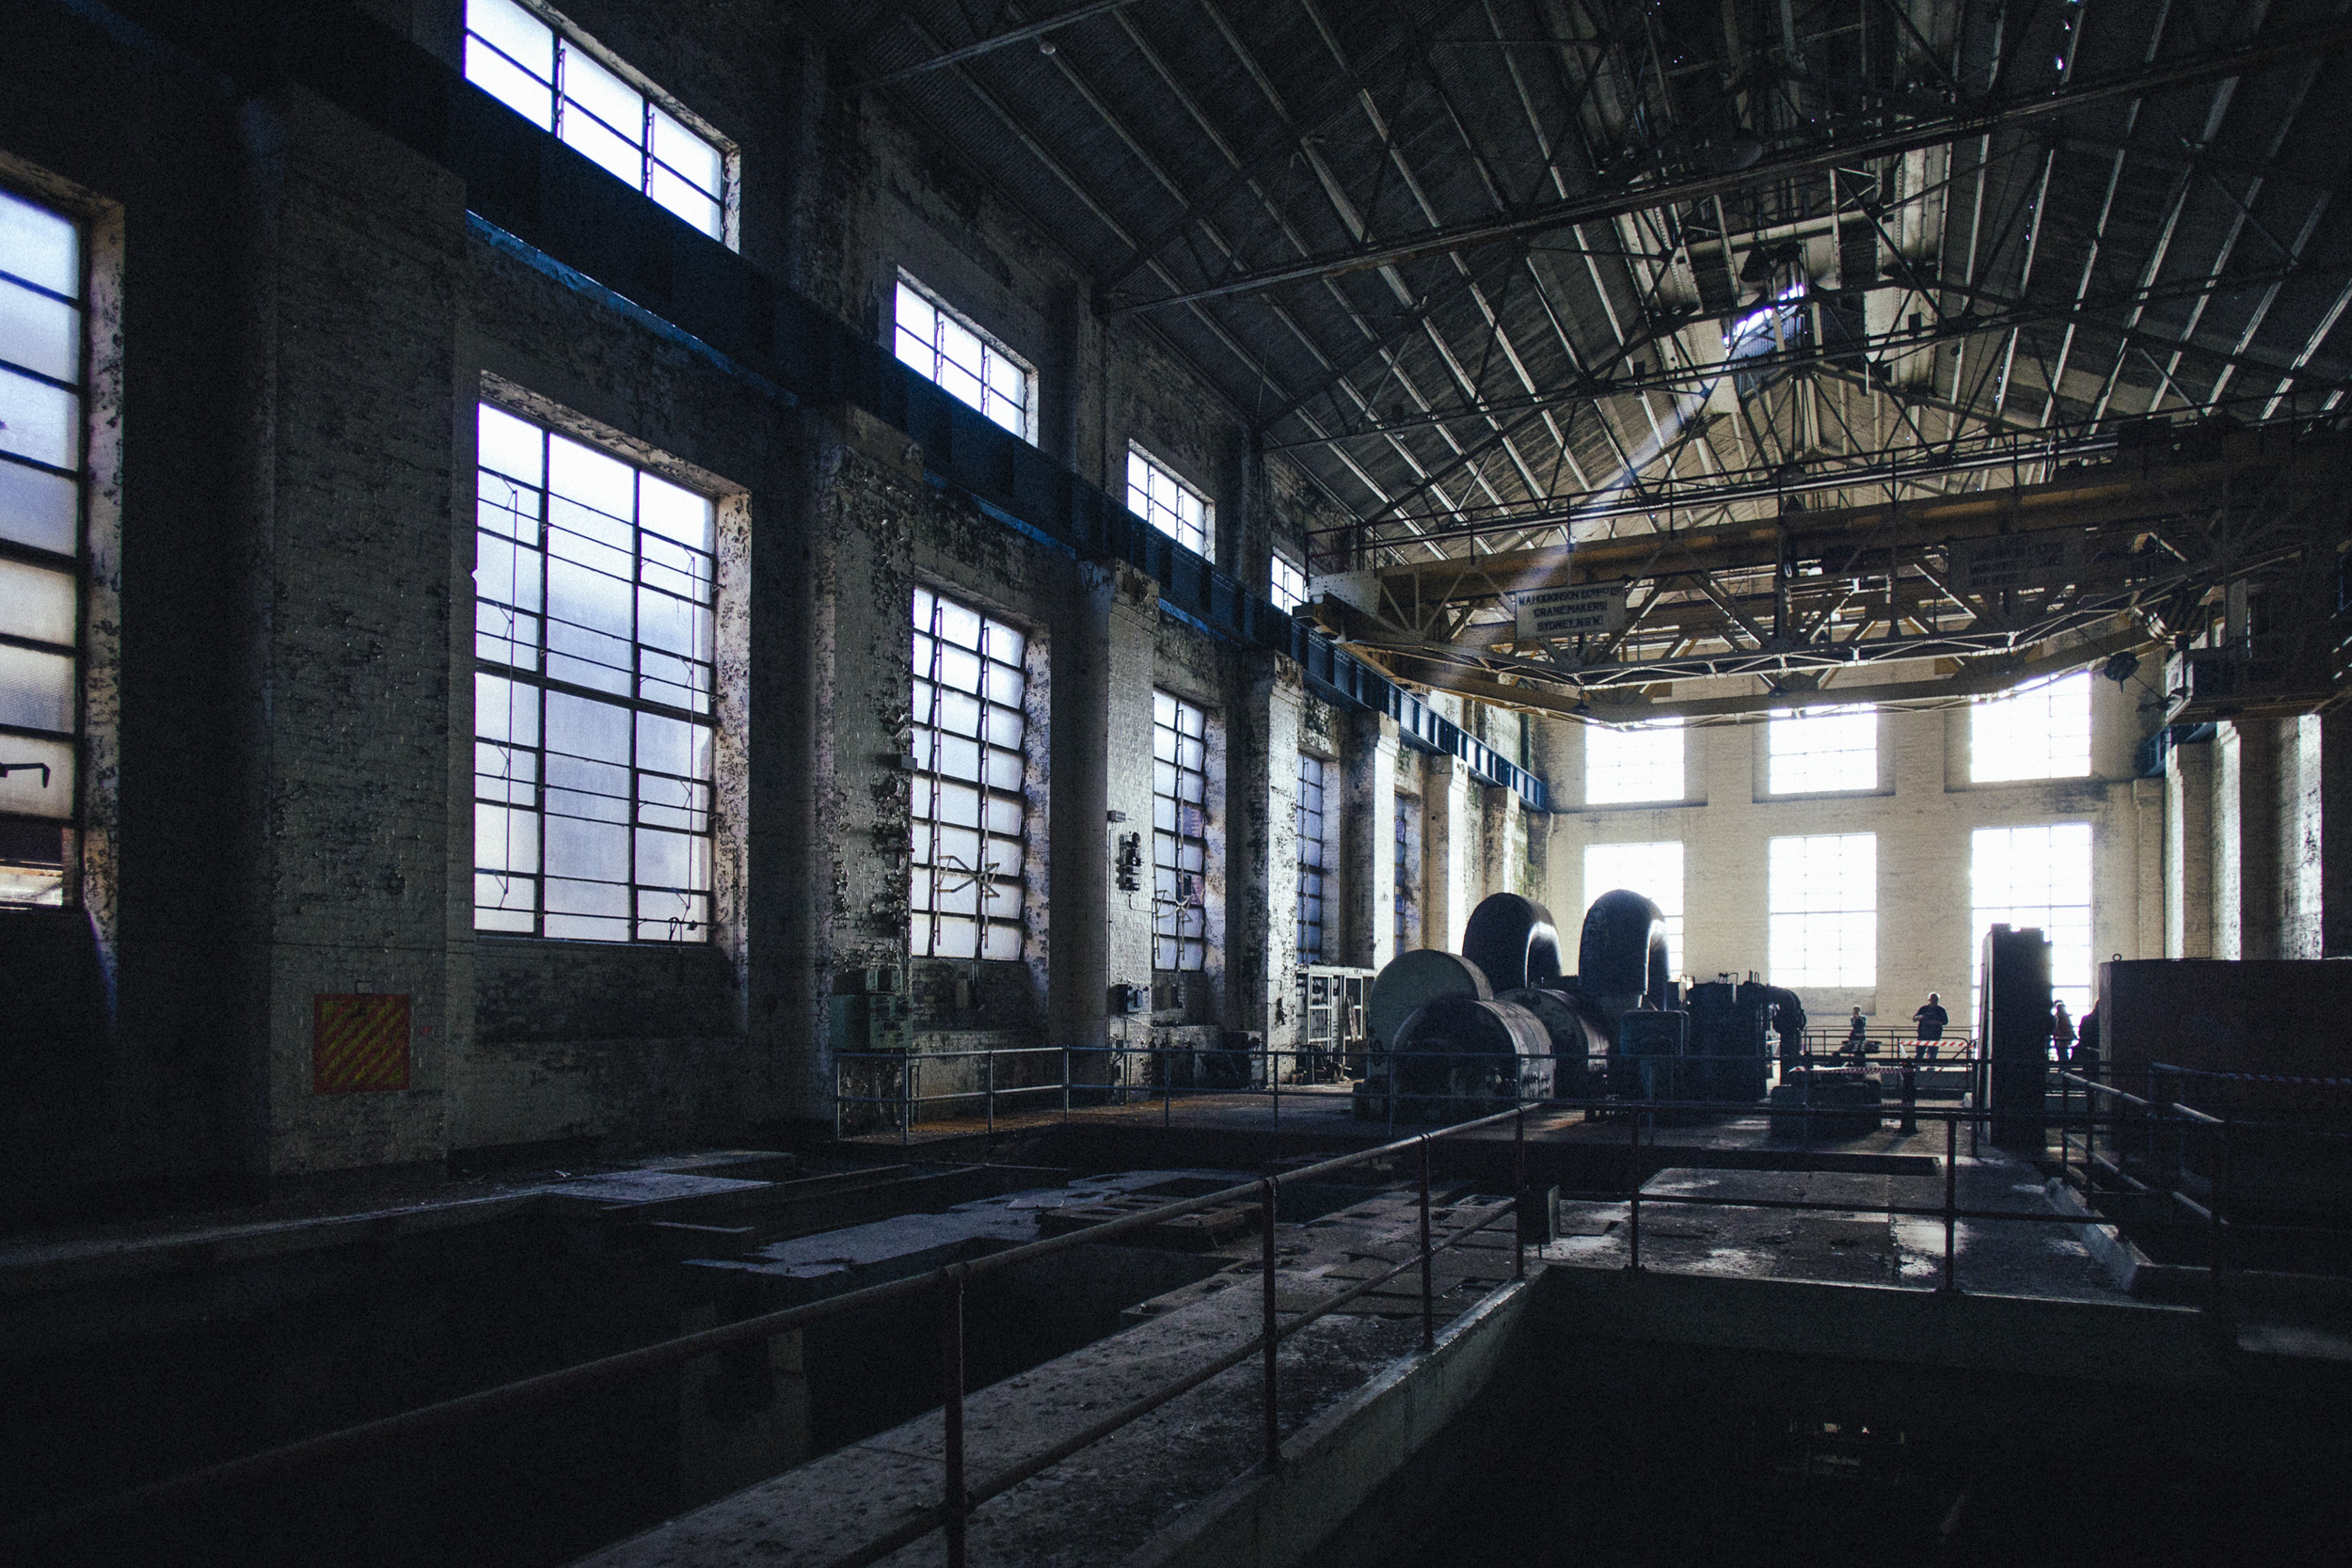 mackintosh_photography_industrial_architecture_02.jpg